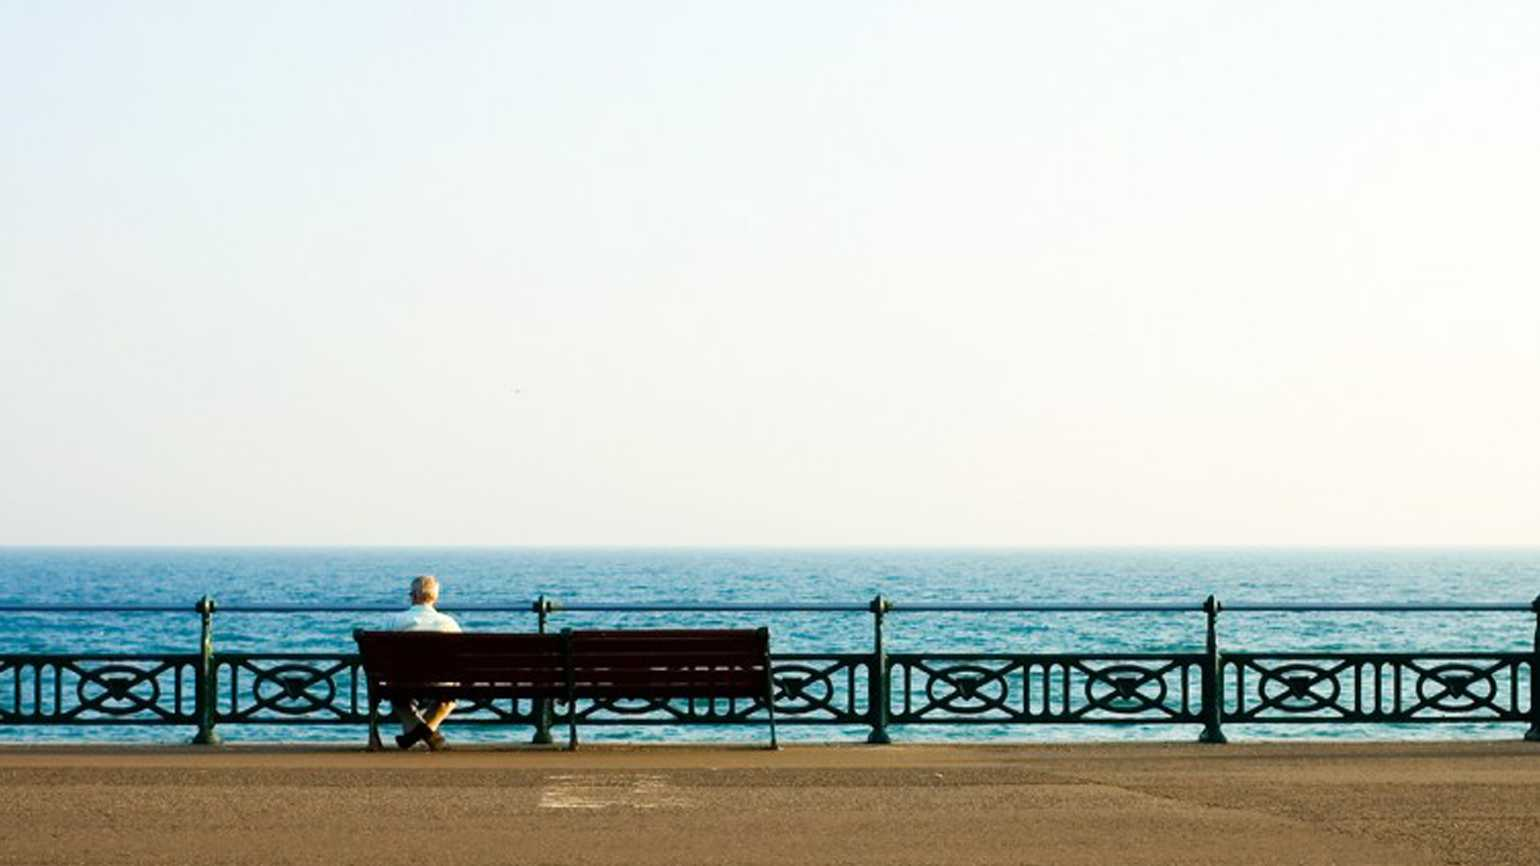 A lonely senior sitting on a bench gazing out to the sea on the beach.